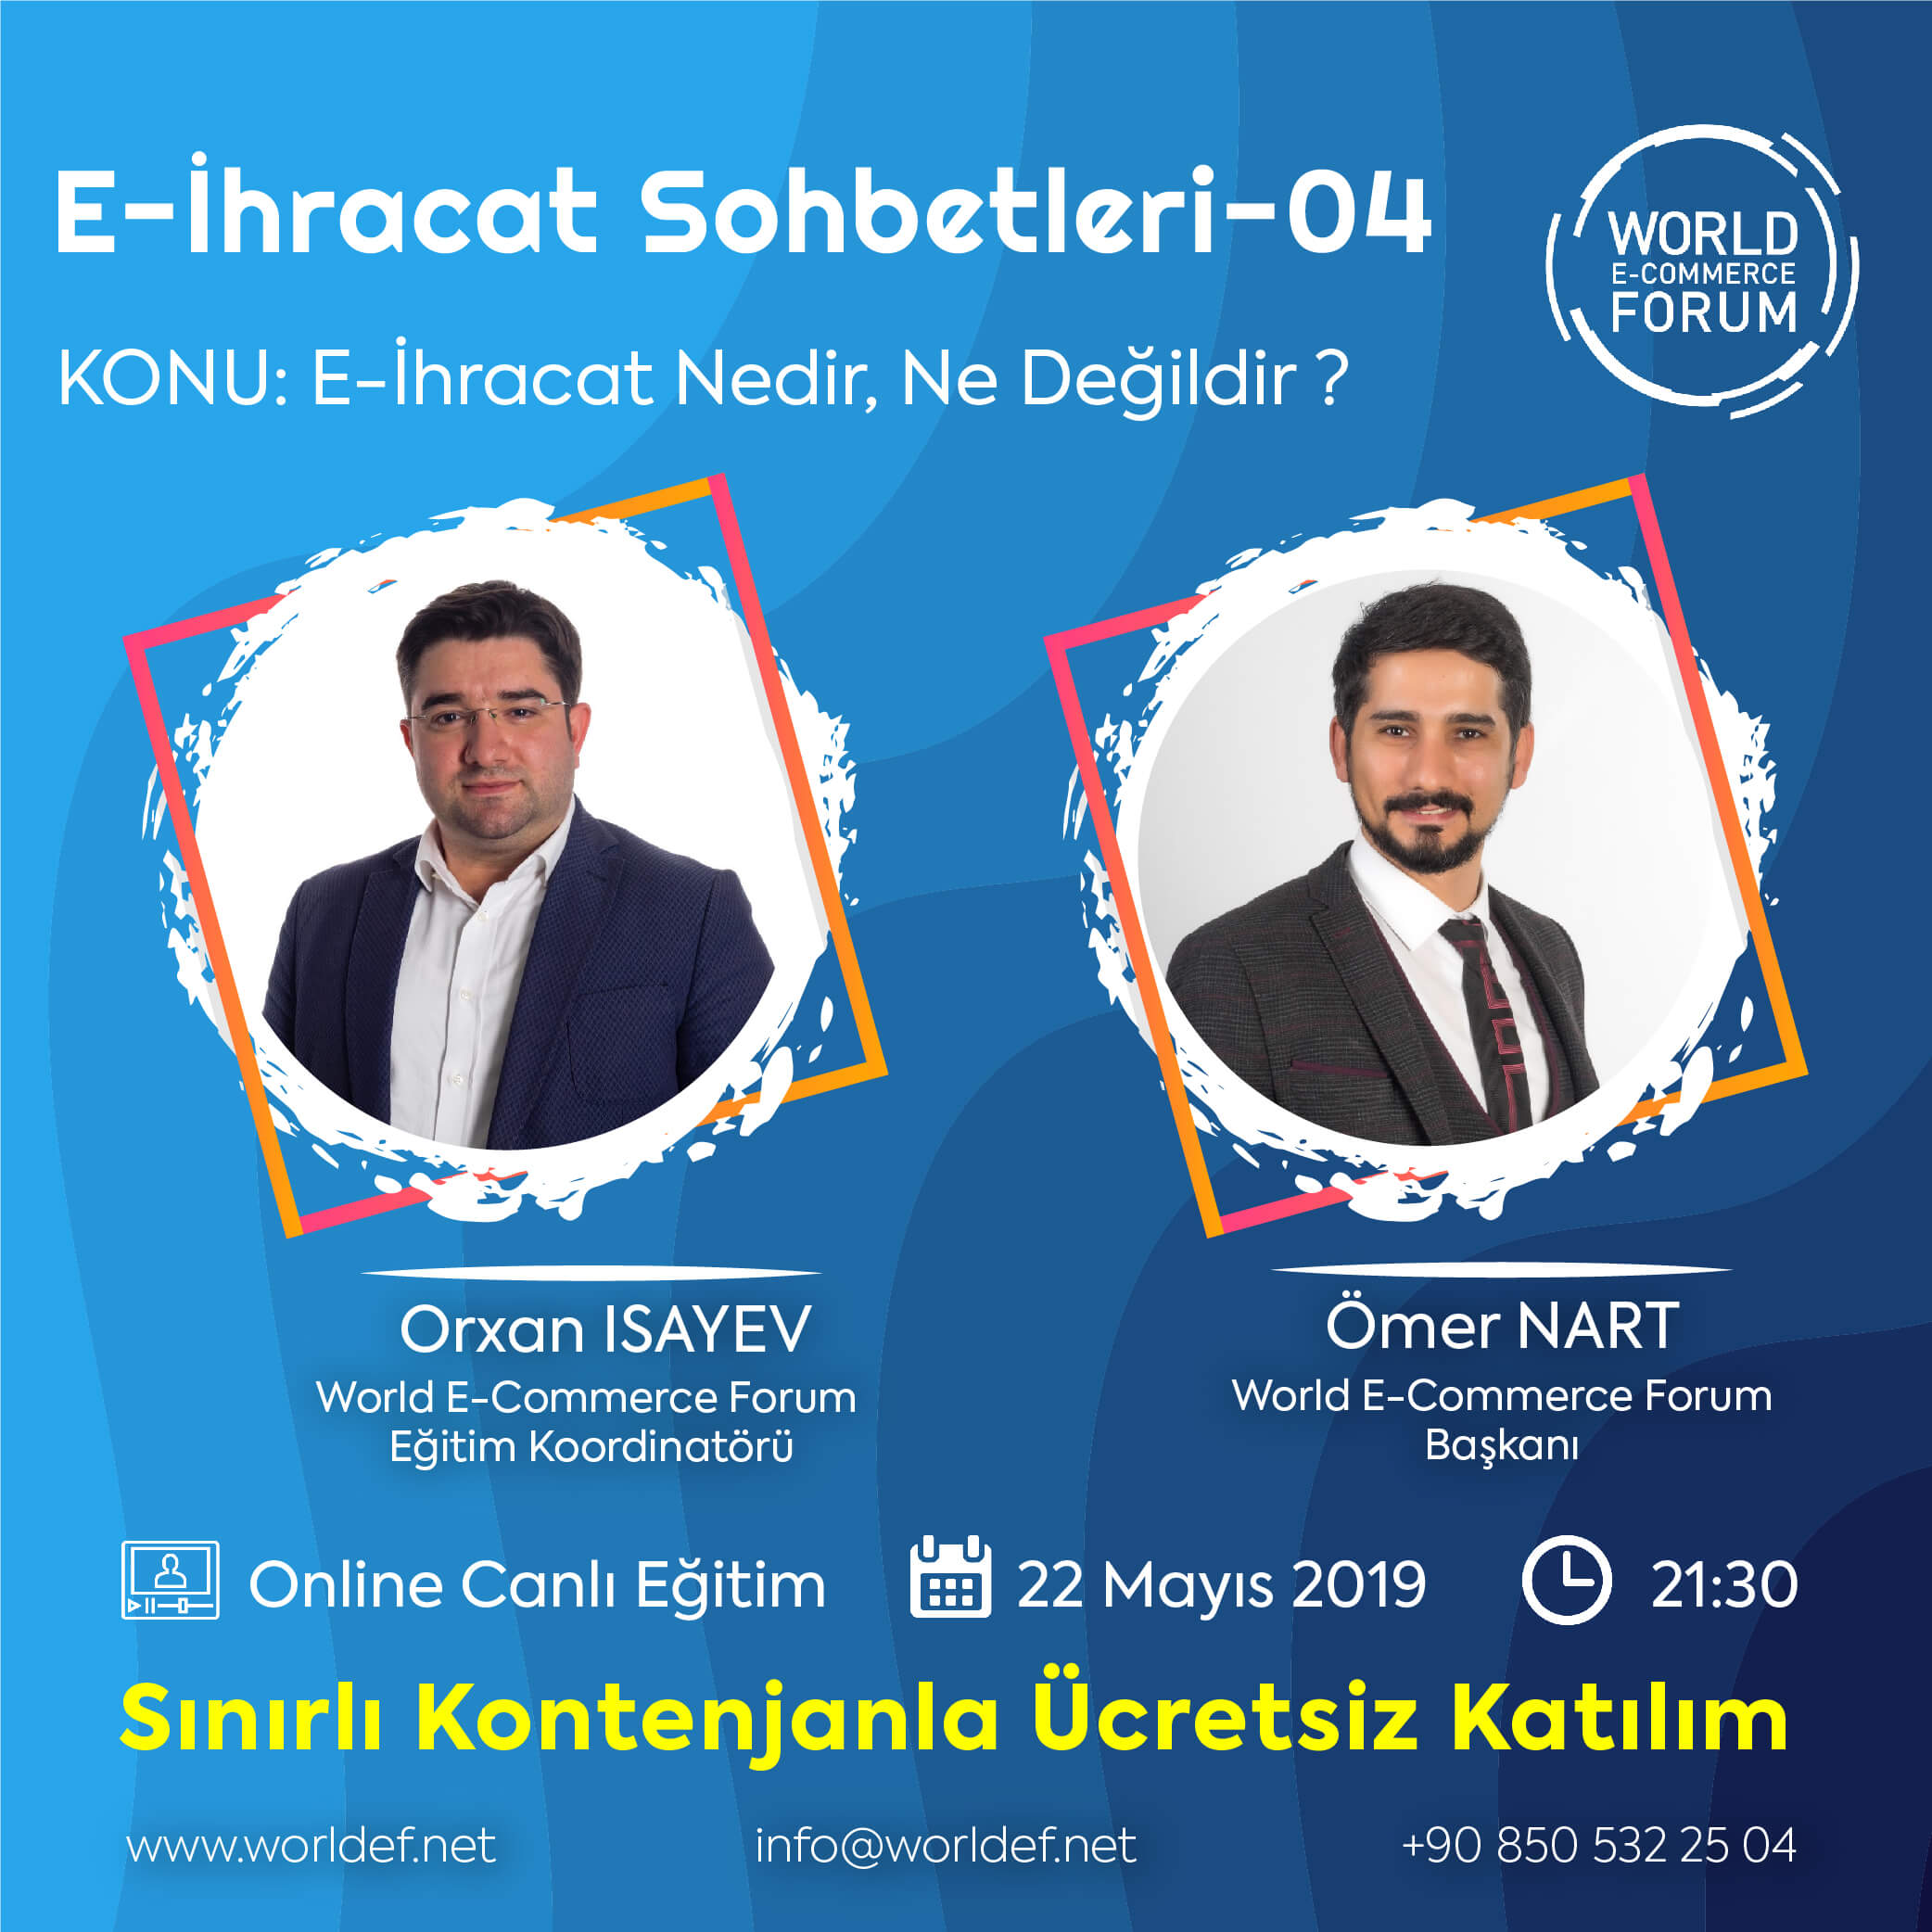 Ömer Nart, the founder of WORLDEF, will be our guest in the series of cross-border e-commerce webinars.